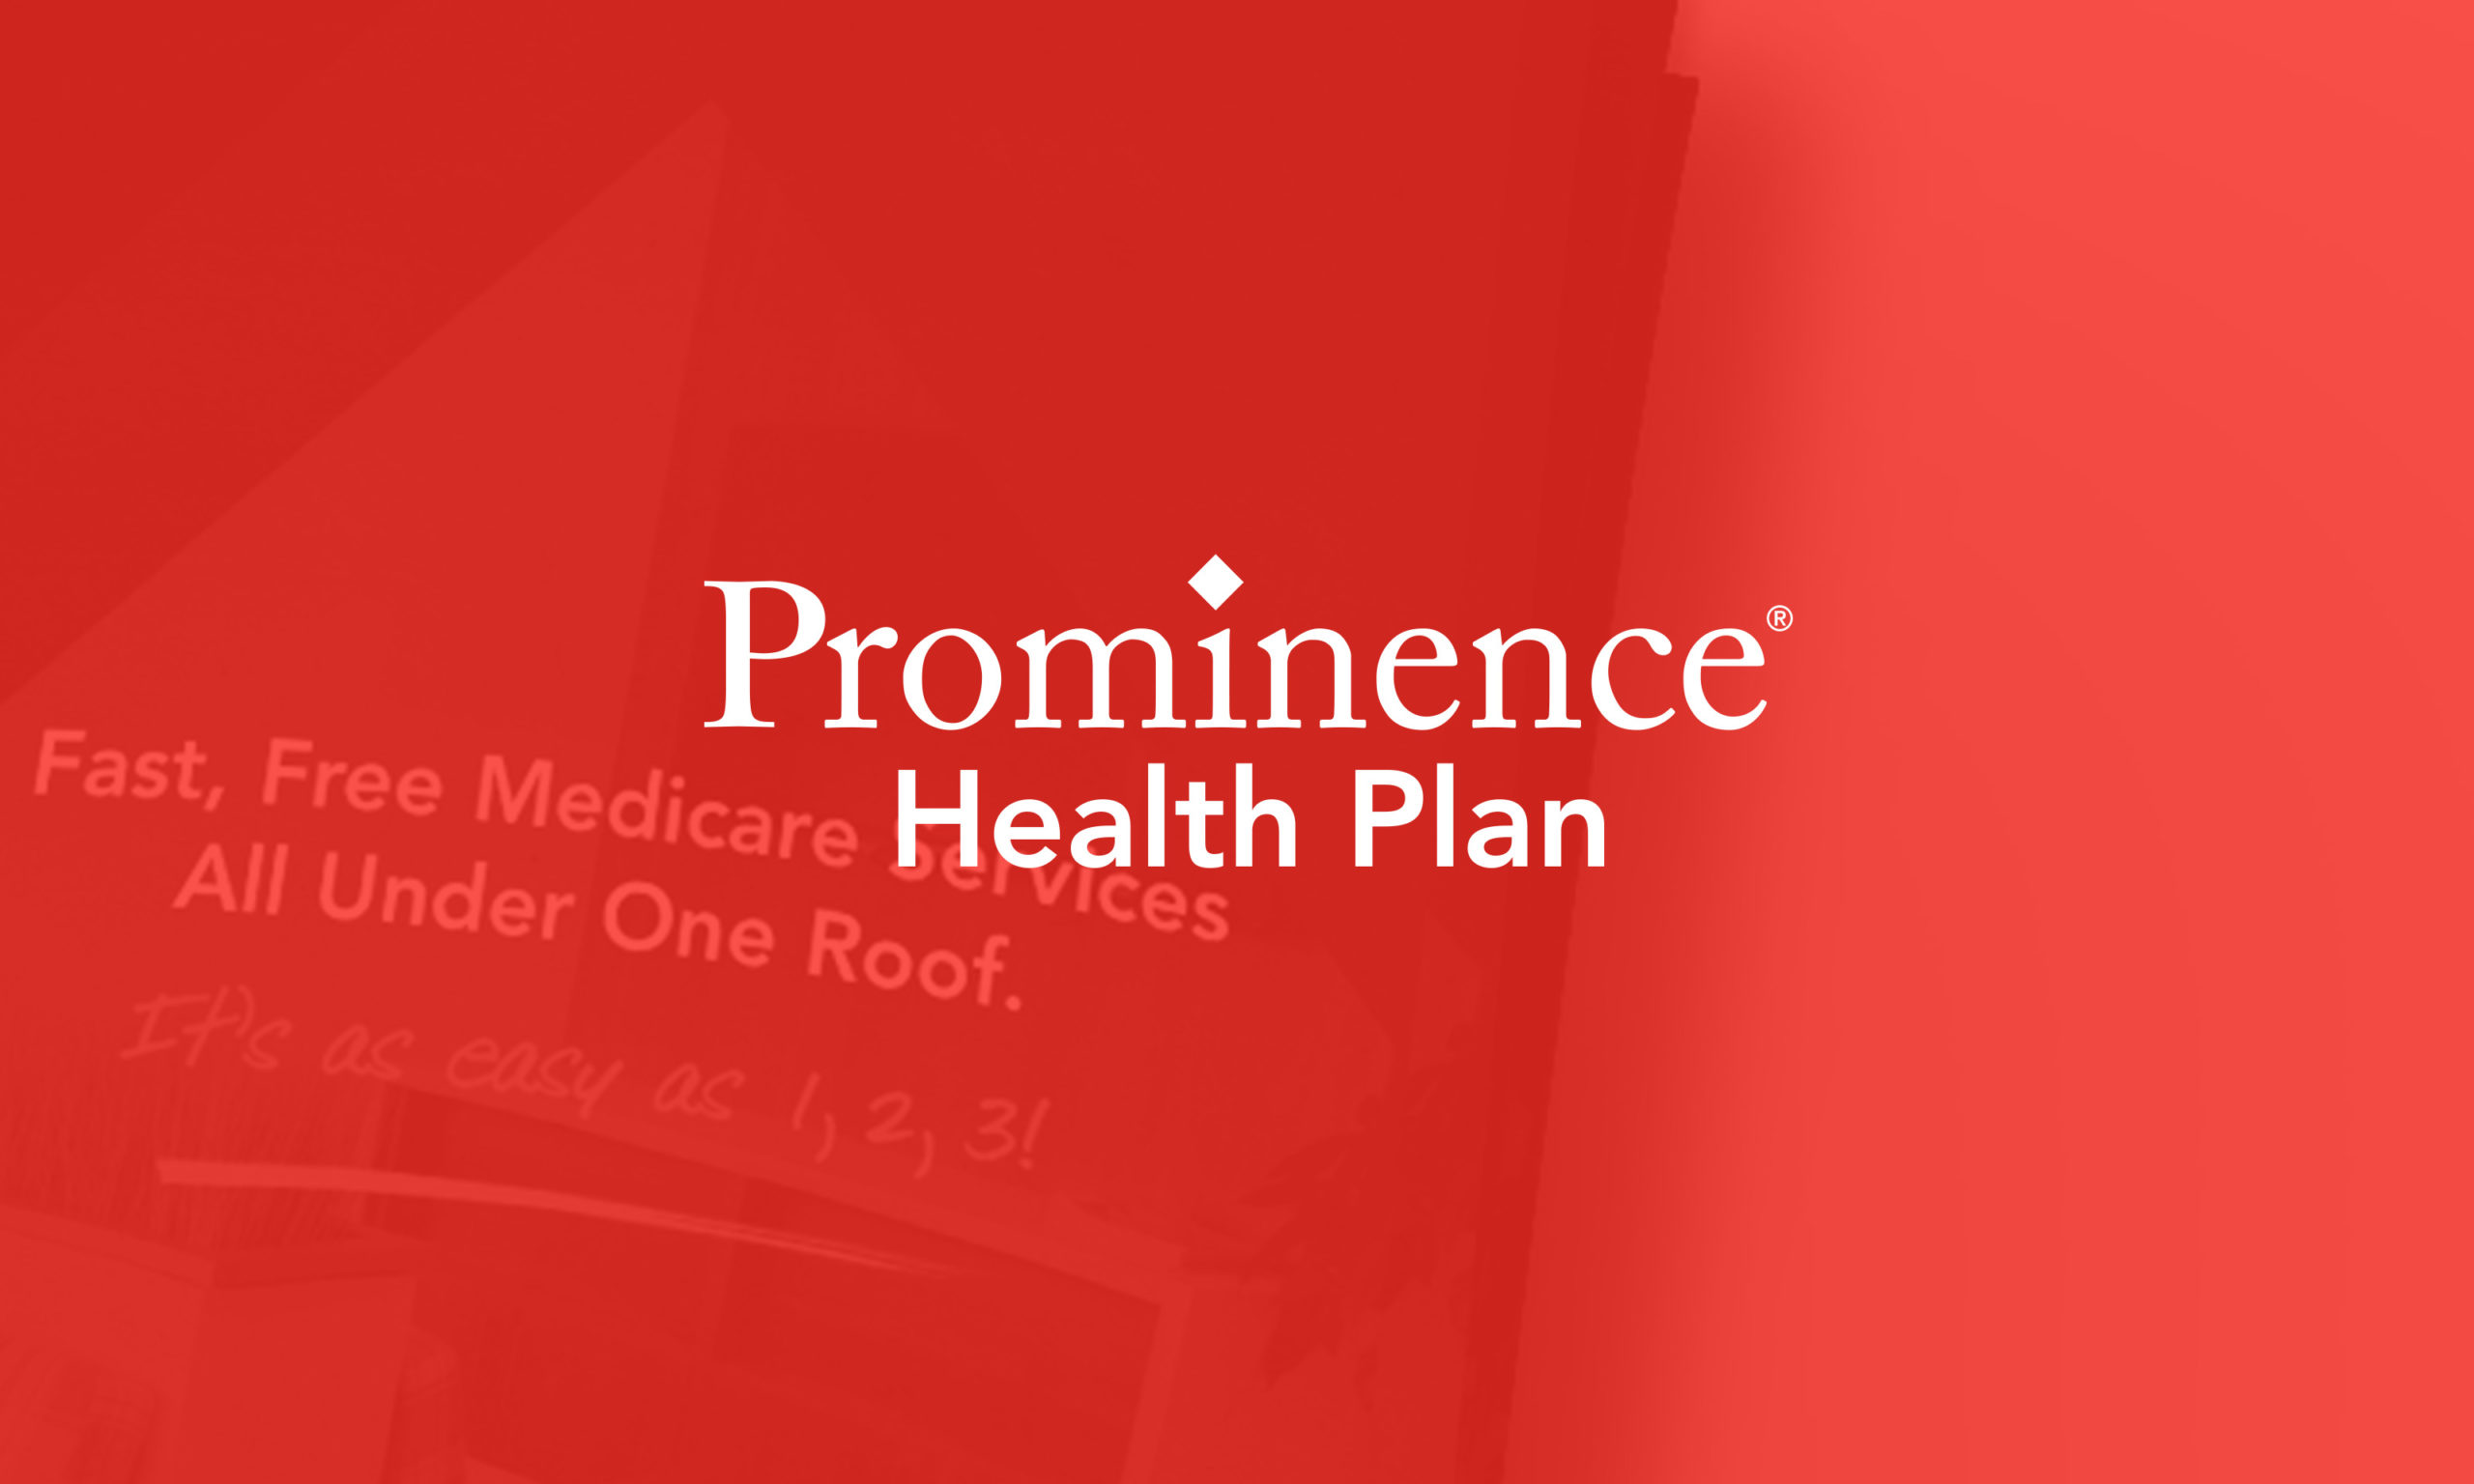 CaseStudy_FeaturedImage__0011_Prominence_Red_V2